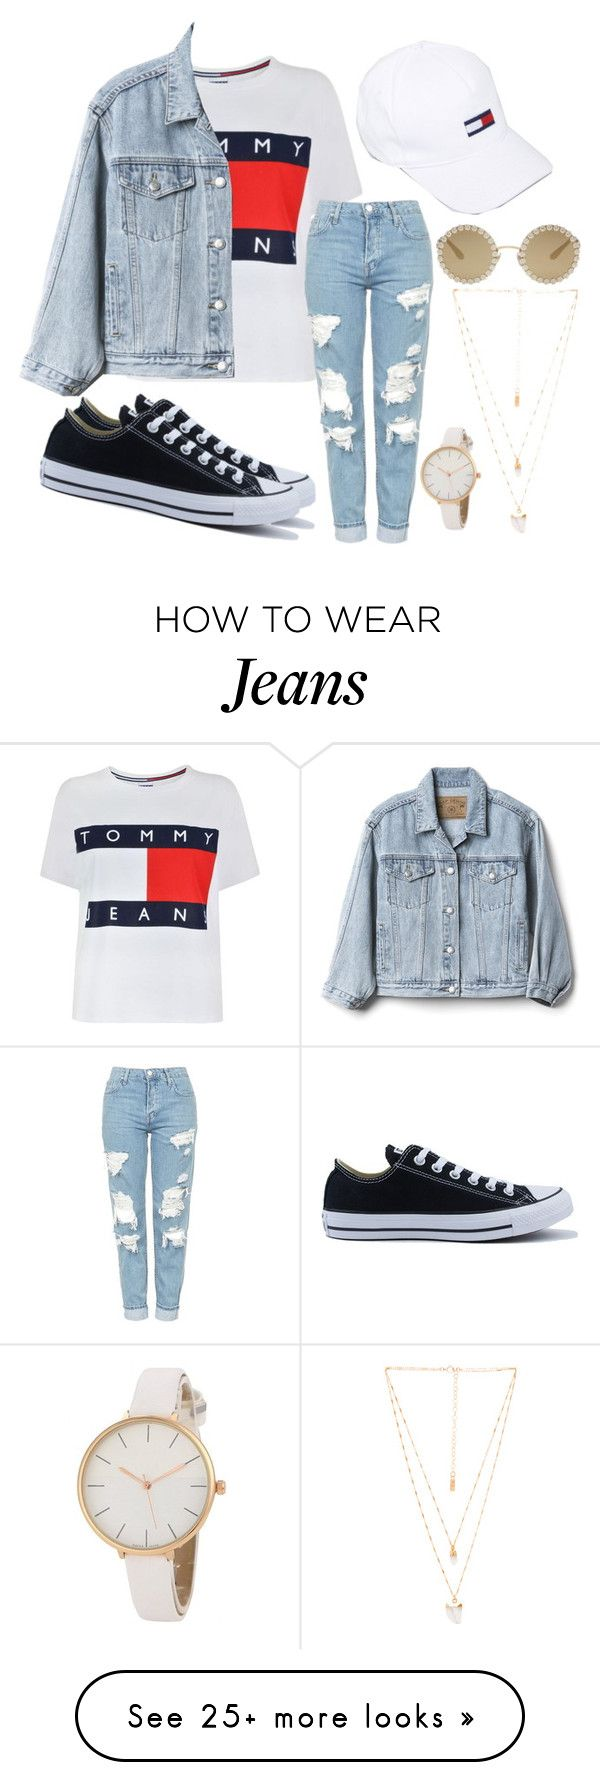 """Tommy Jeans"" by cyanbluebree on Polyvore featuring Tommy Hilfiger, Gap, Topshop, Converse, Hilfiger Denim, Dolce&Gabbana and Natalie B"